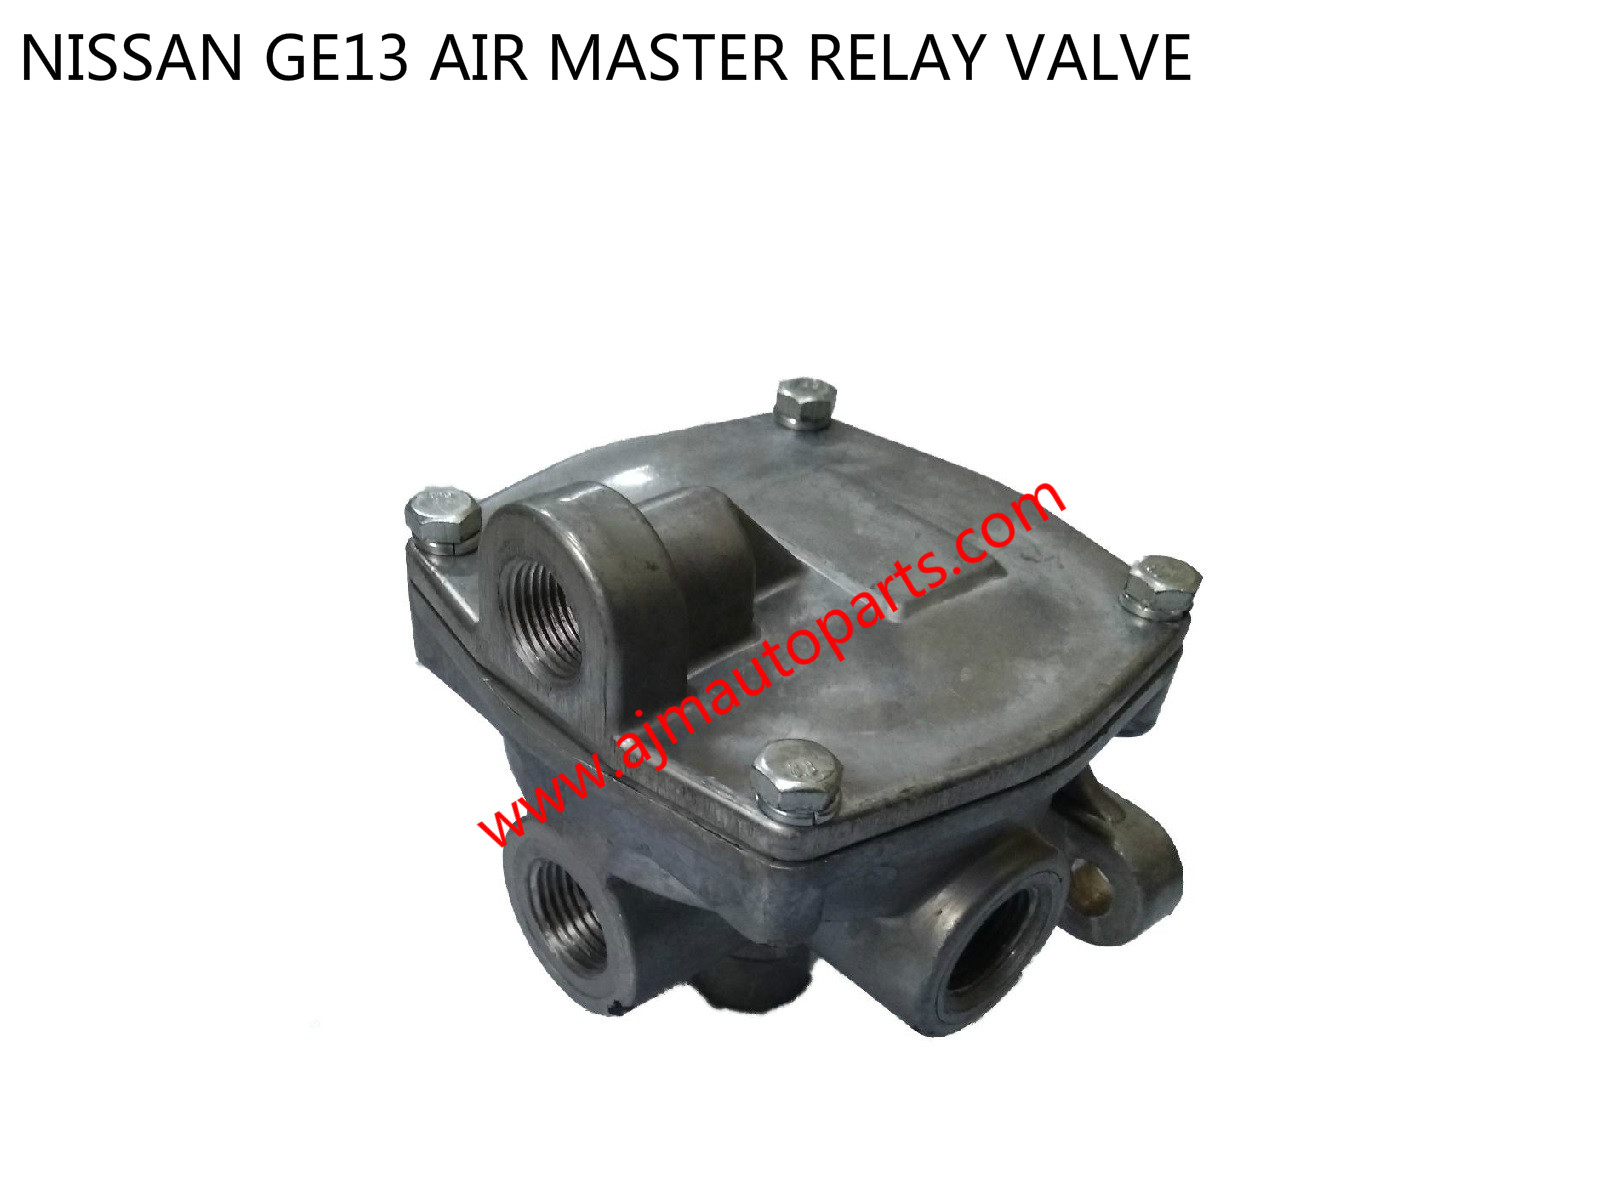 NISSAN GE13 AIR MASTER RELAY VALVE-